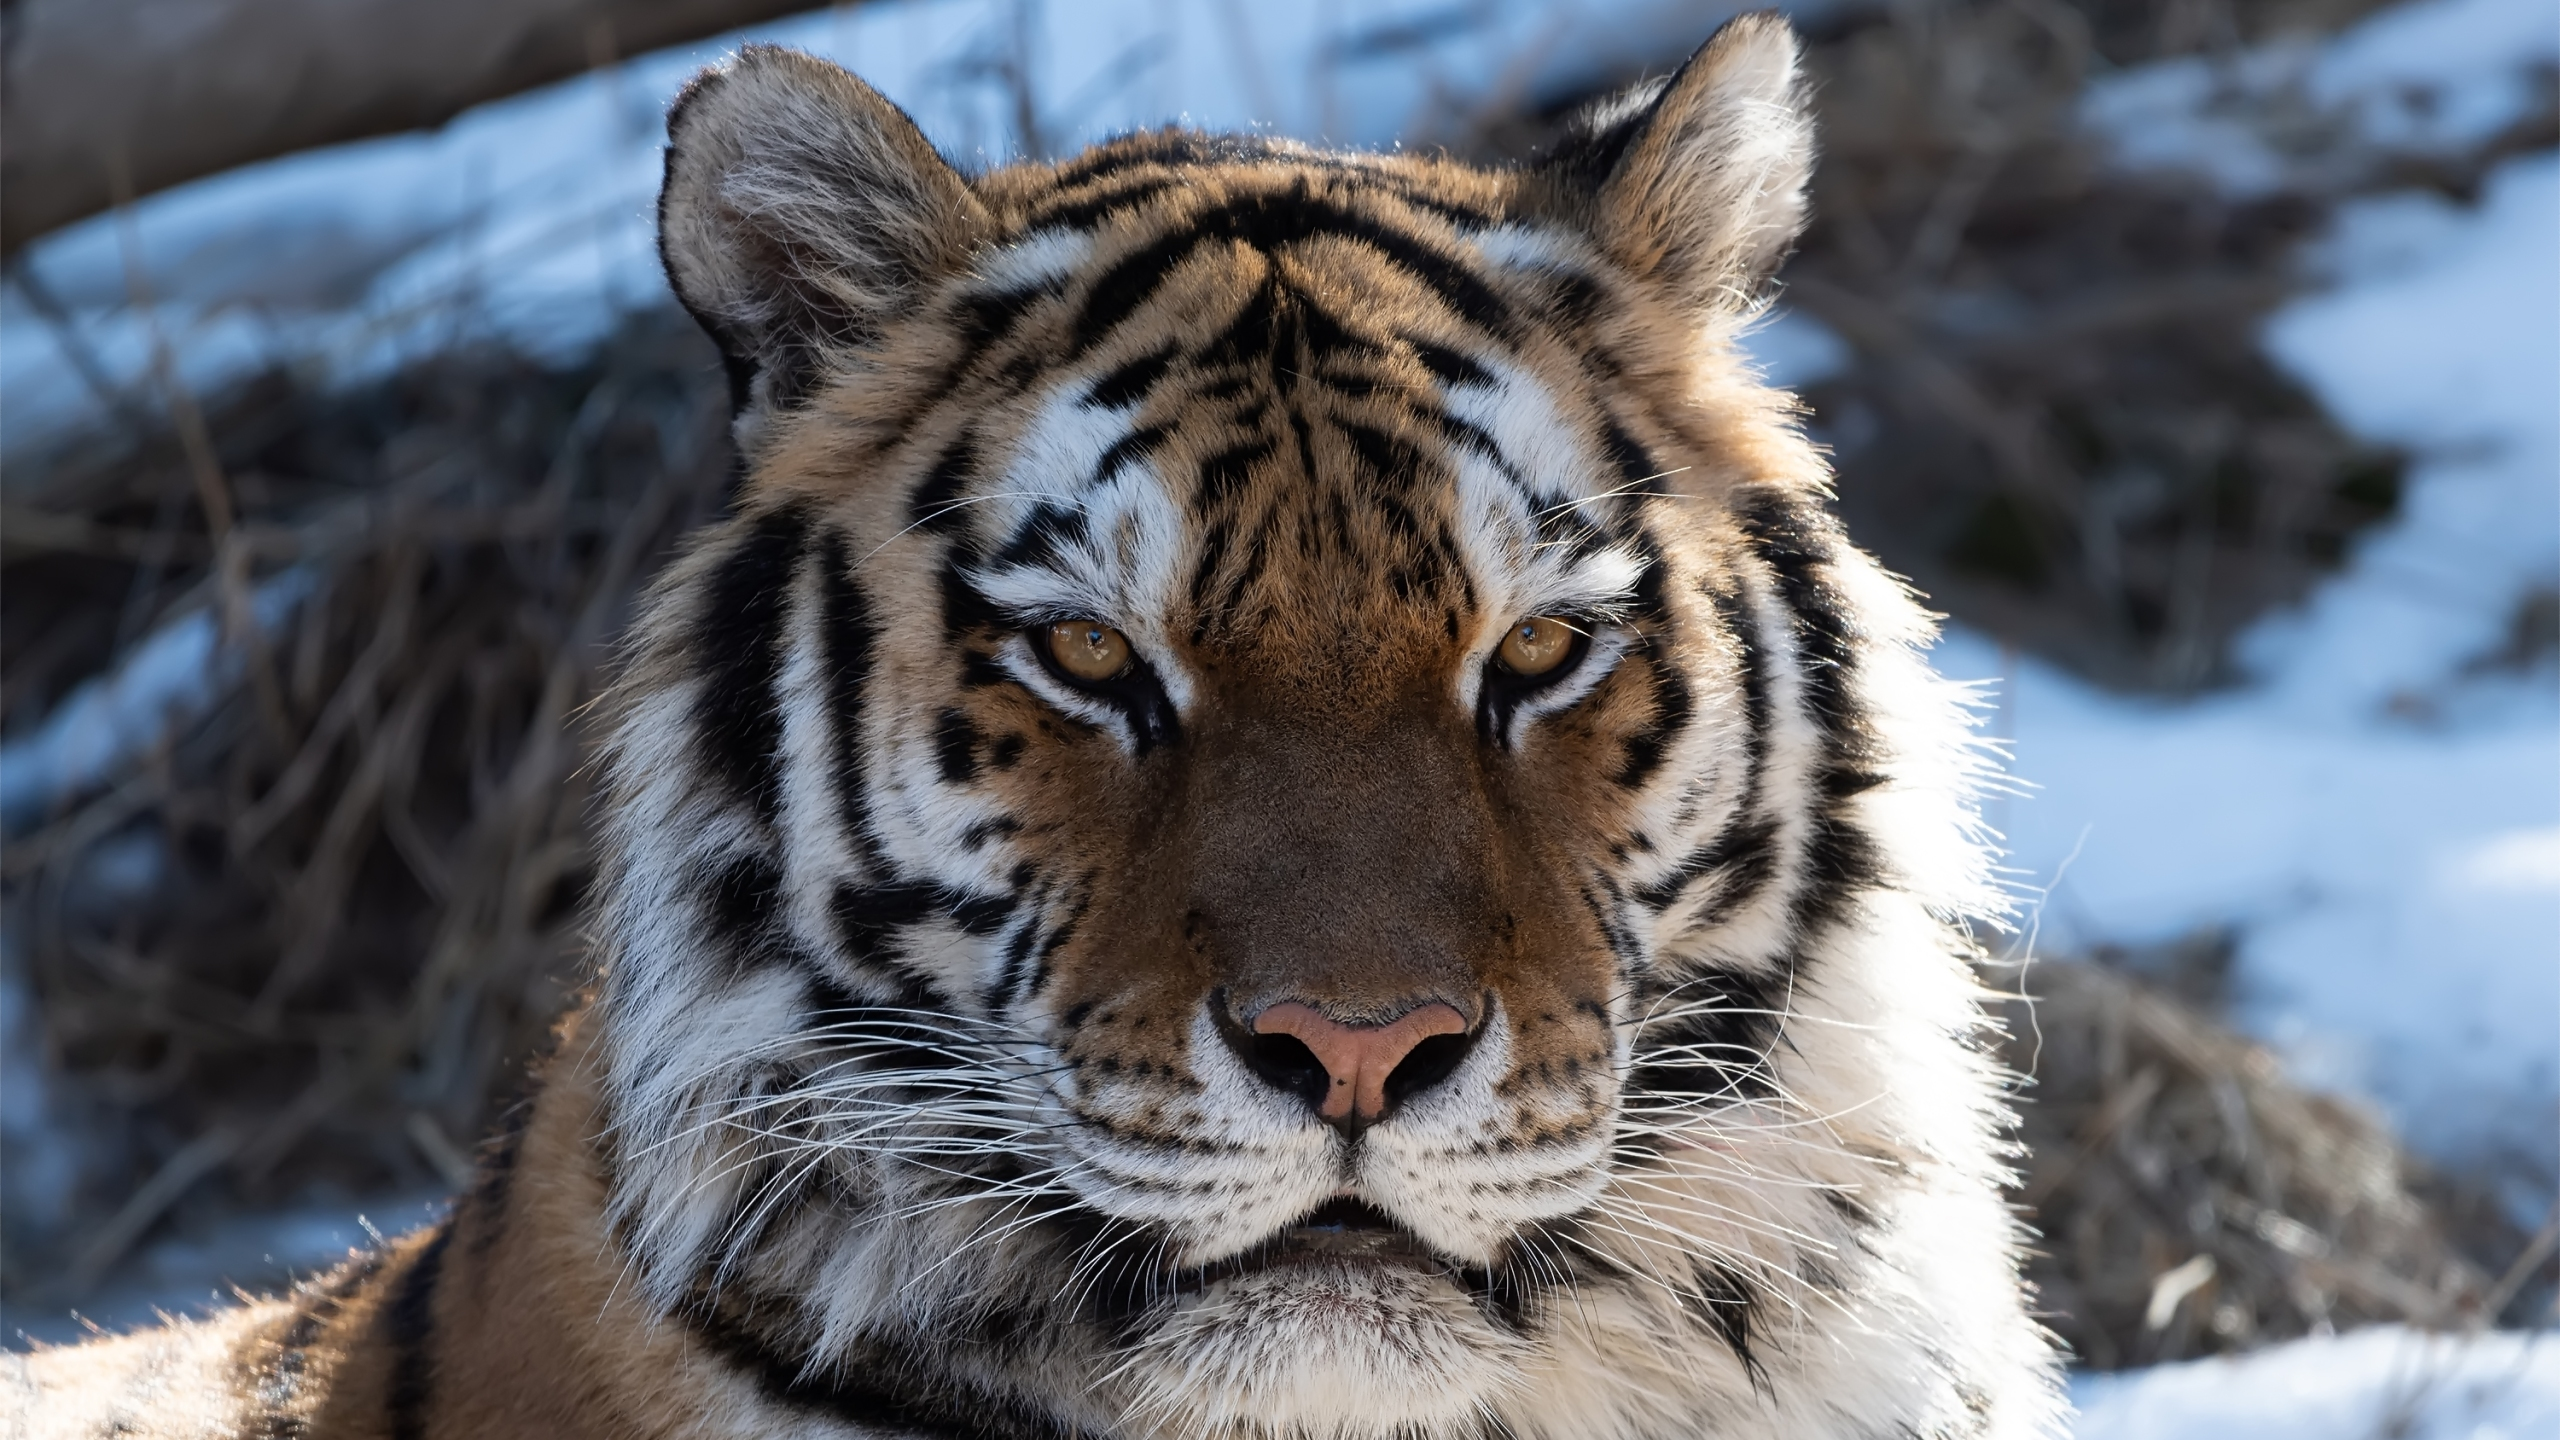 An Amur tiger is seen in an undated photo released Feb. 24, 2021, by the Cheyenne Mountain Zoo.